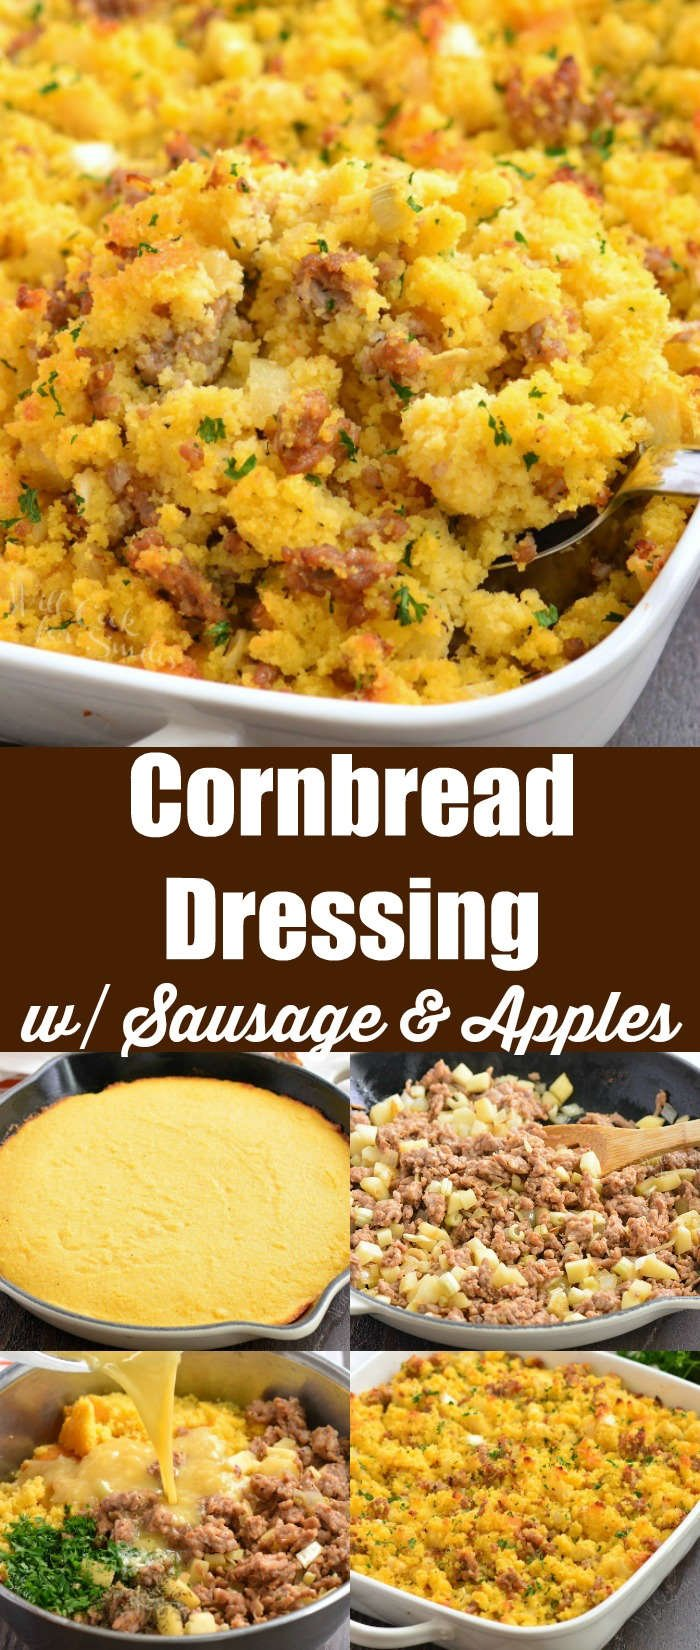 sausage cornbread dressing collage